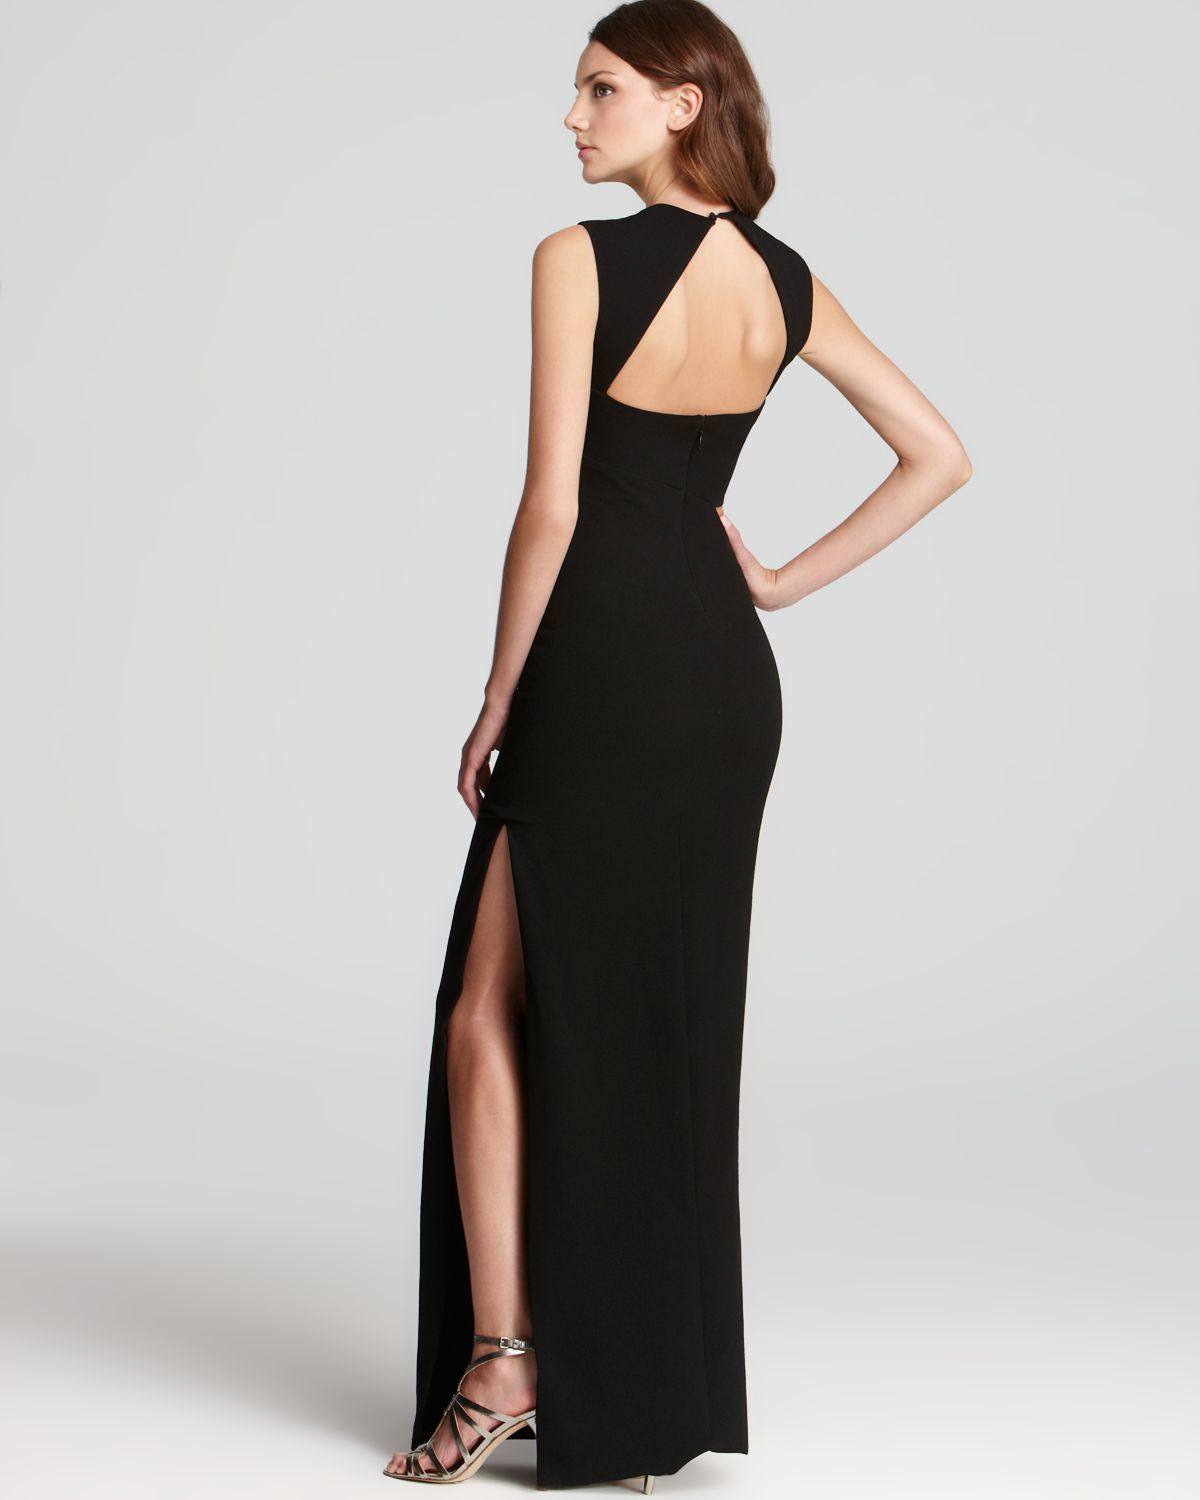 36ef5bc4823 Bcbgmaxazria Gown Sleeveless Cut Out In Black Lyst